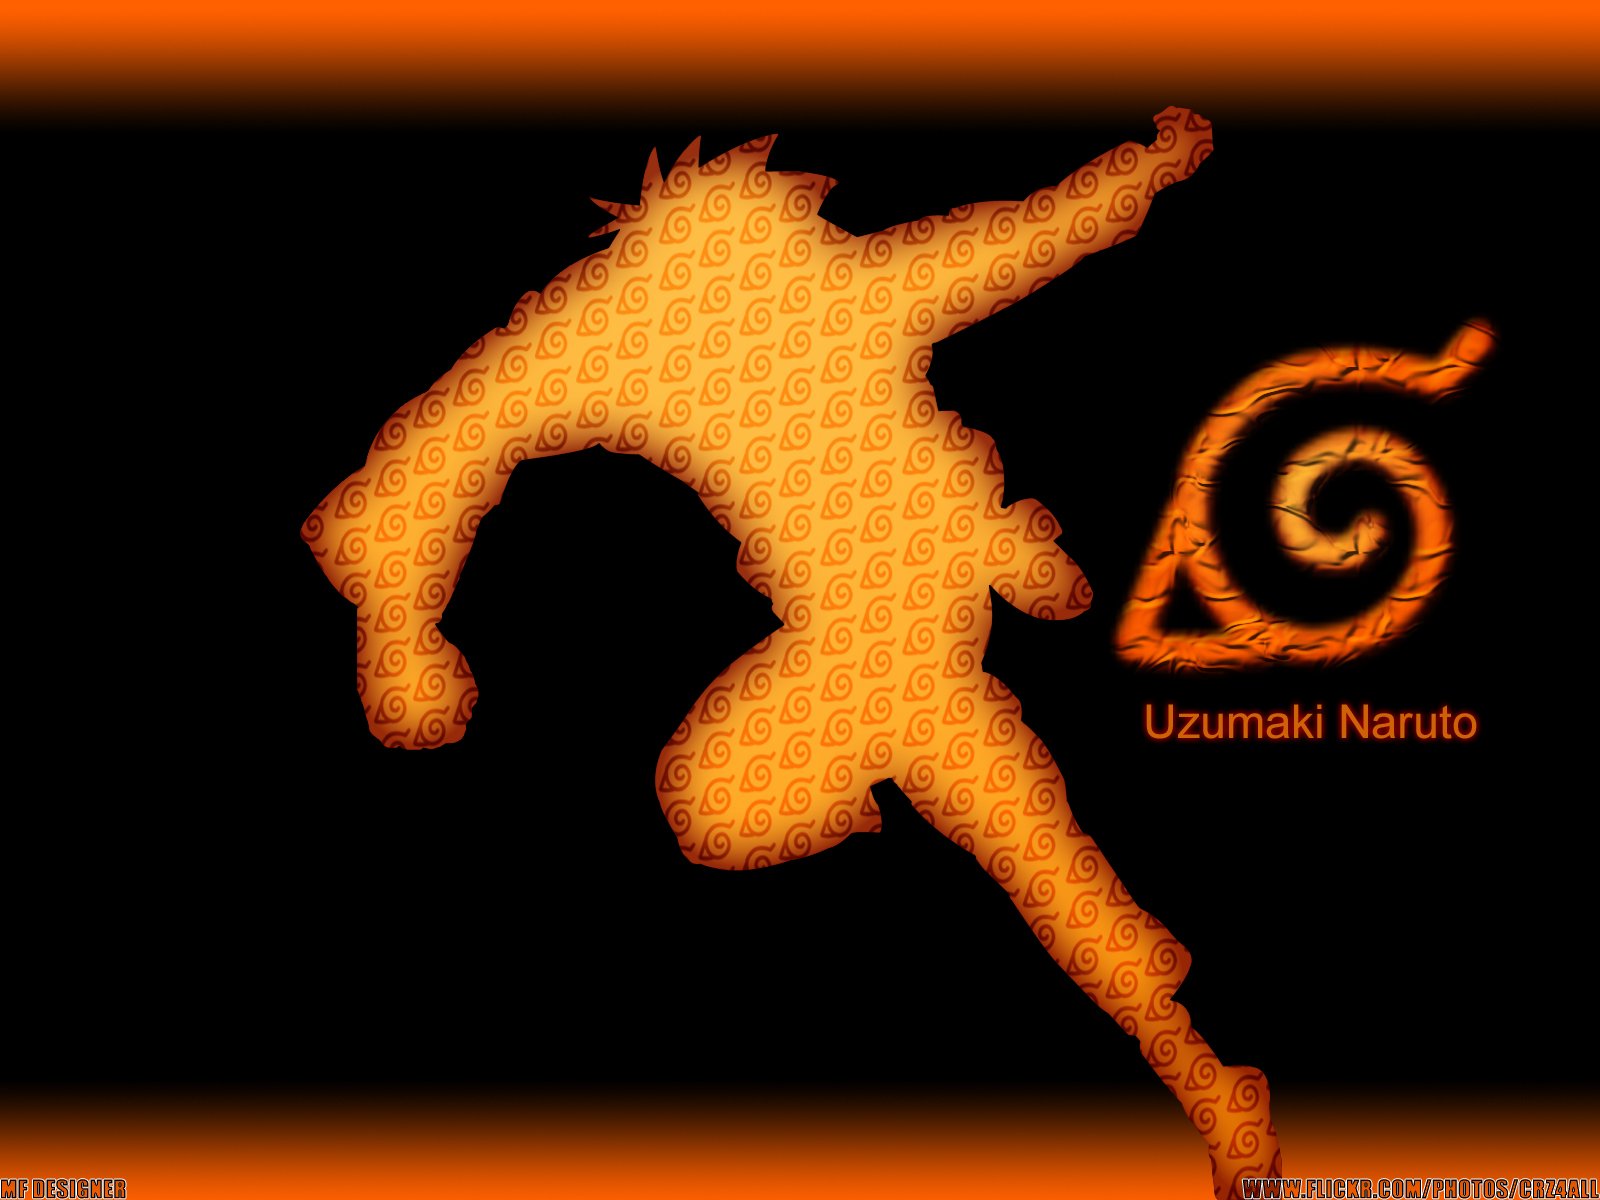 Uzumaki Naruto Wallpaper